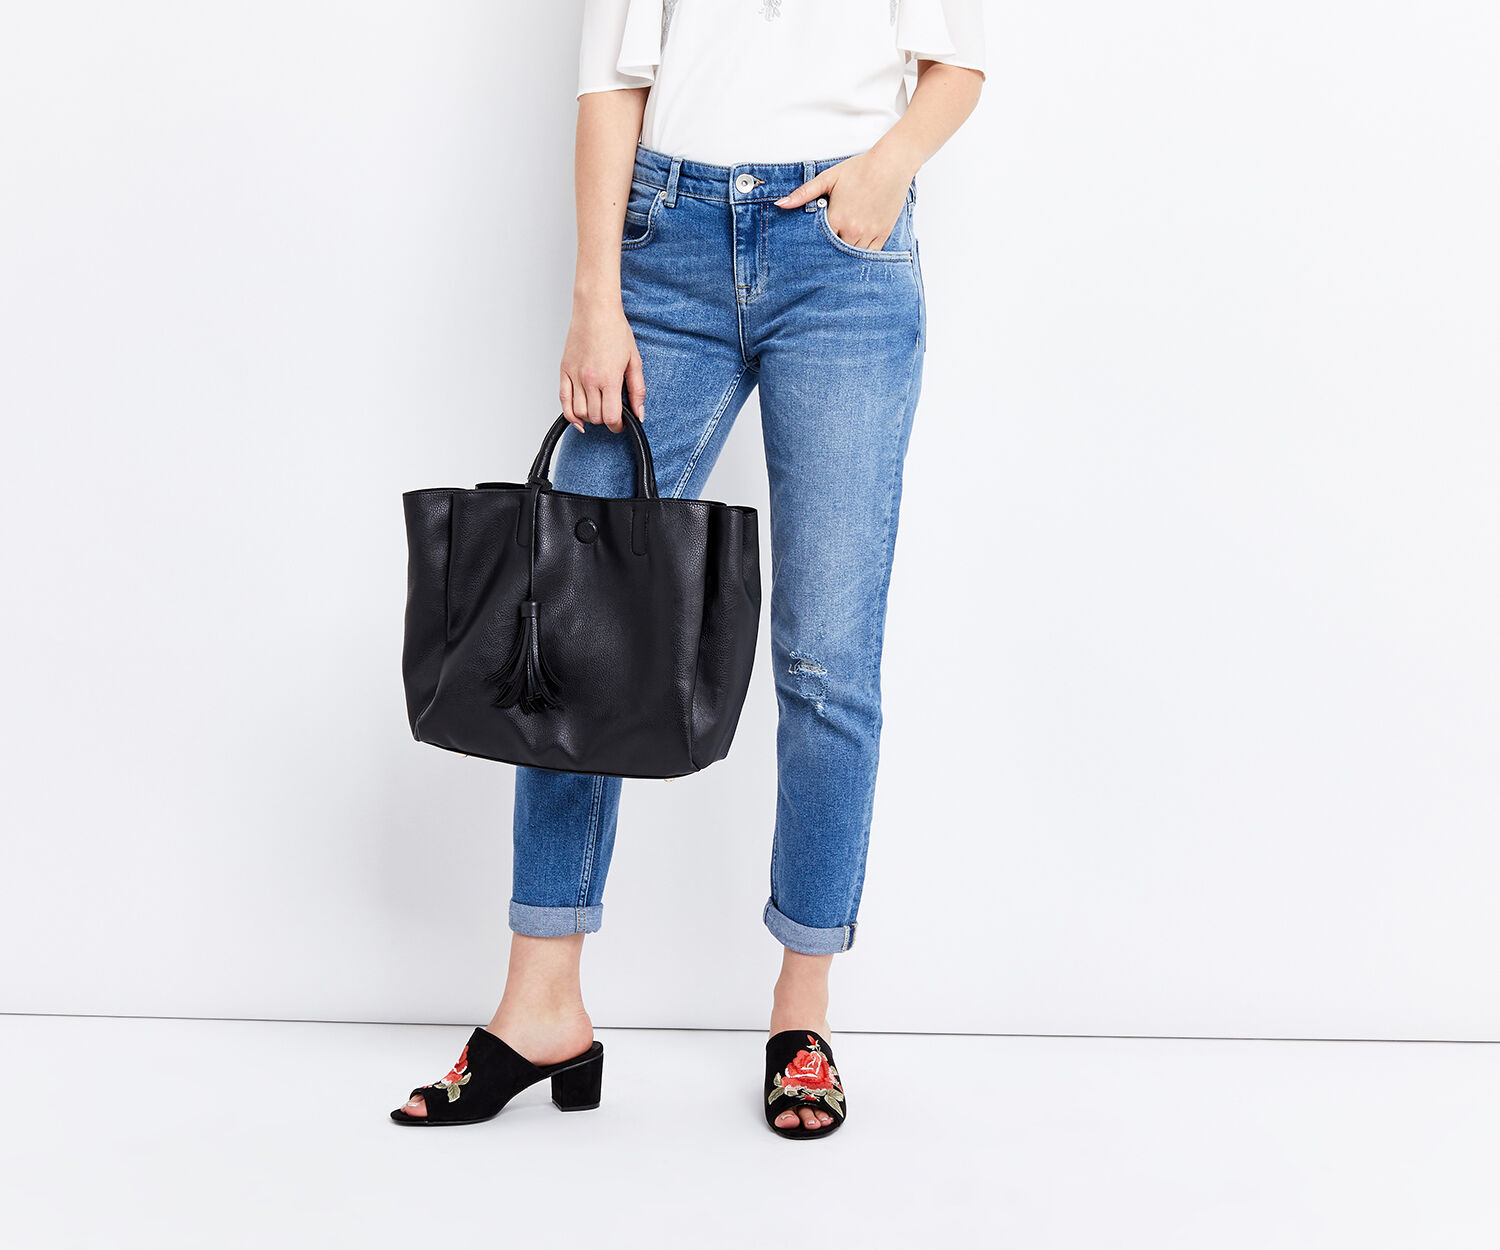 Oasis, SHORT TOPHANDLE TOTE Black 1